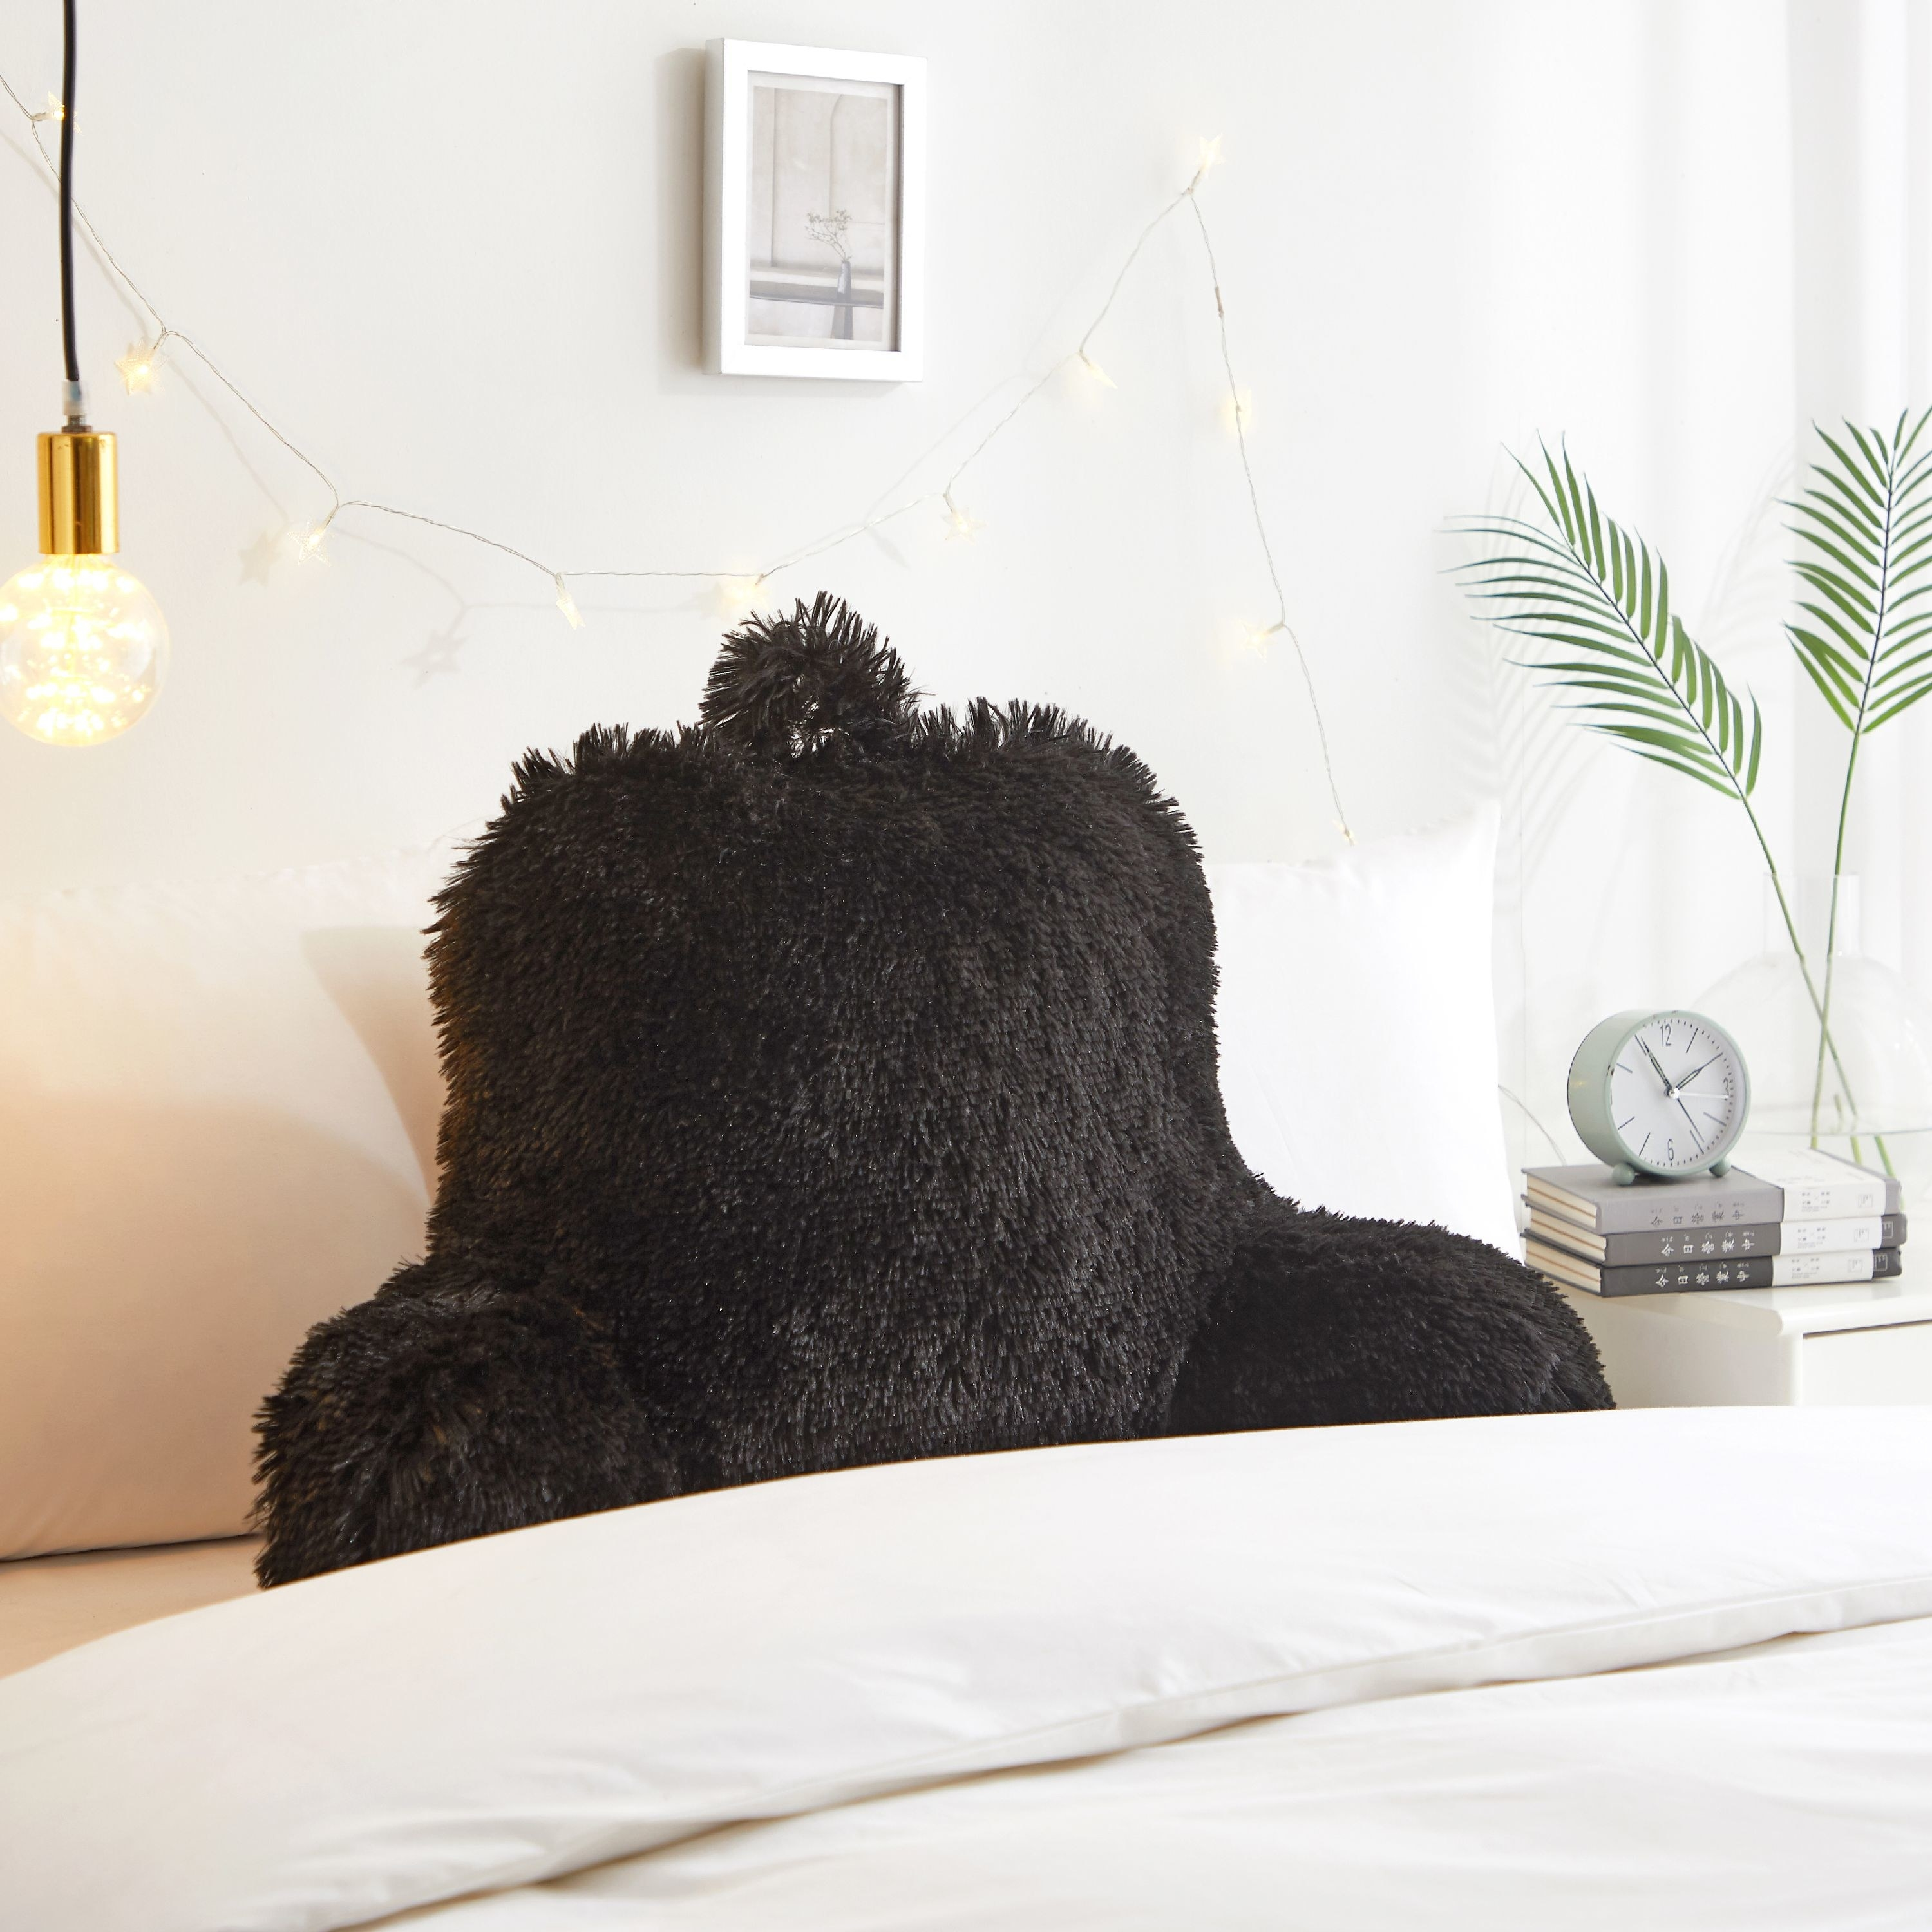 the black faux-fur backrest pillow displayed in a bedroom setting